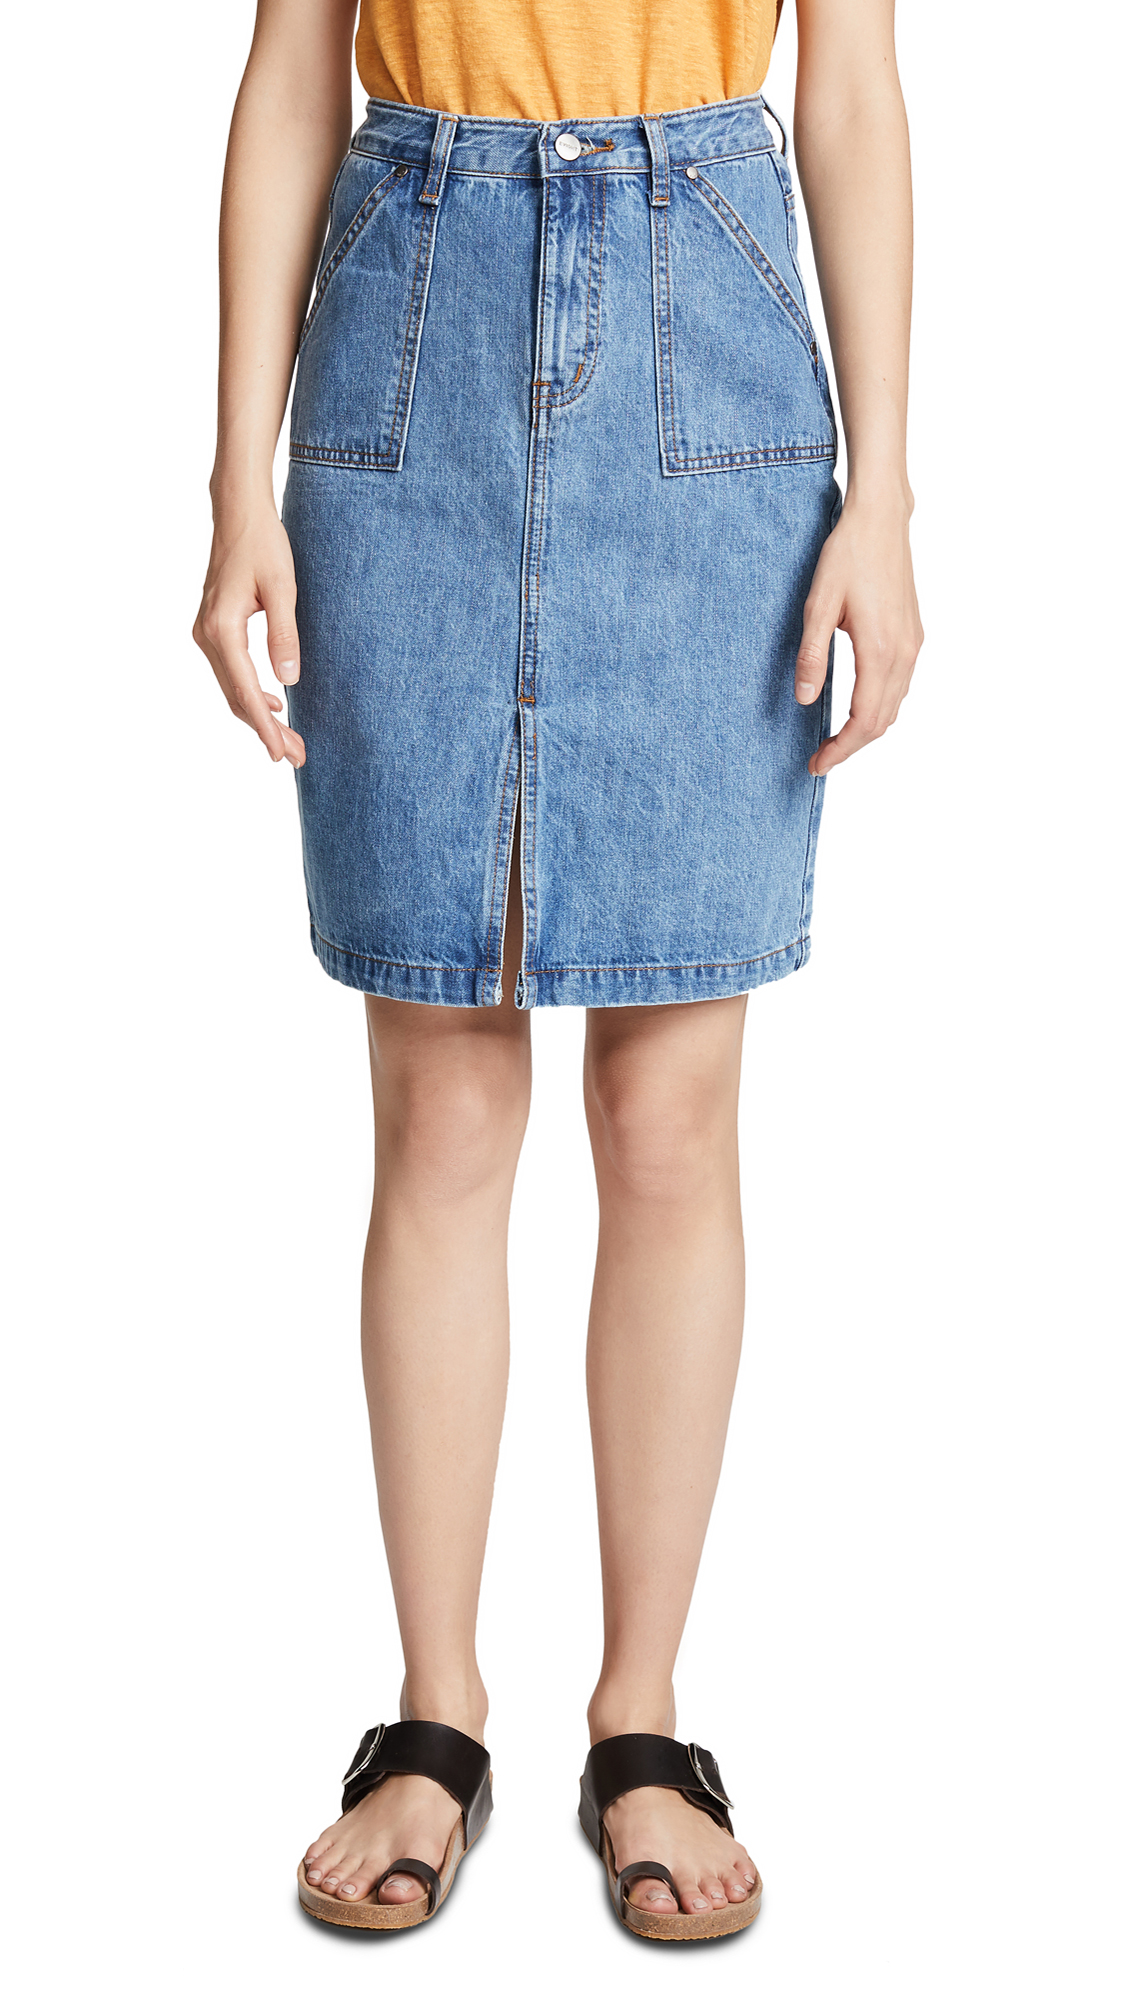 EVIDNT Denim Pencil Skirt In Fairfax